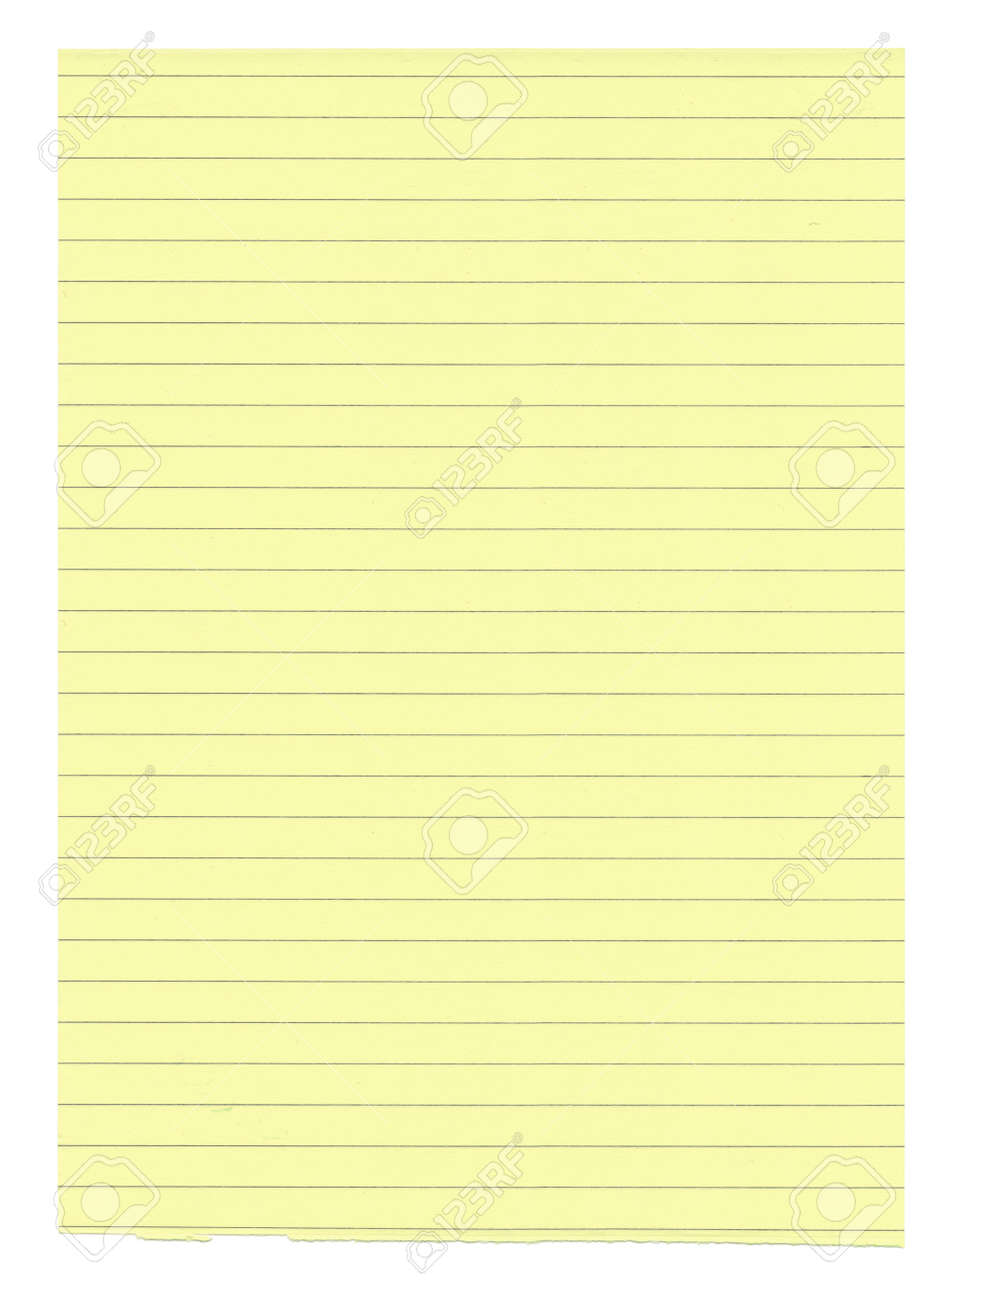 xxxl size yellow lined paper isolated on white background stock